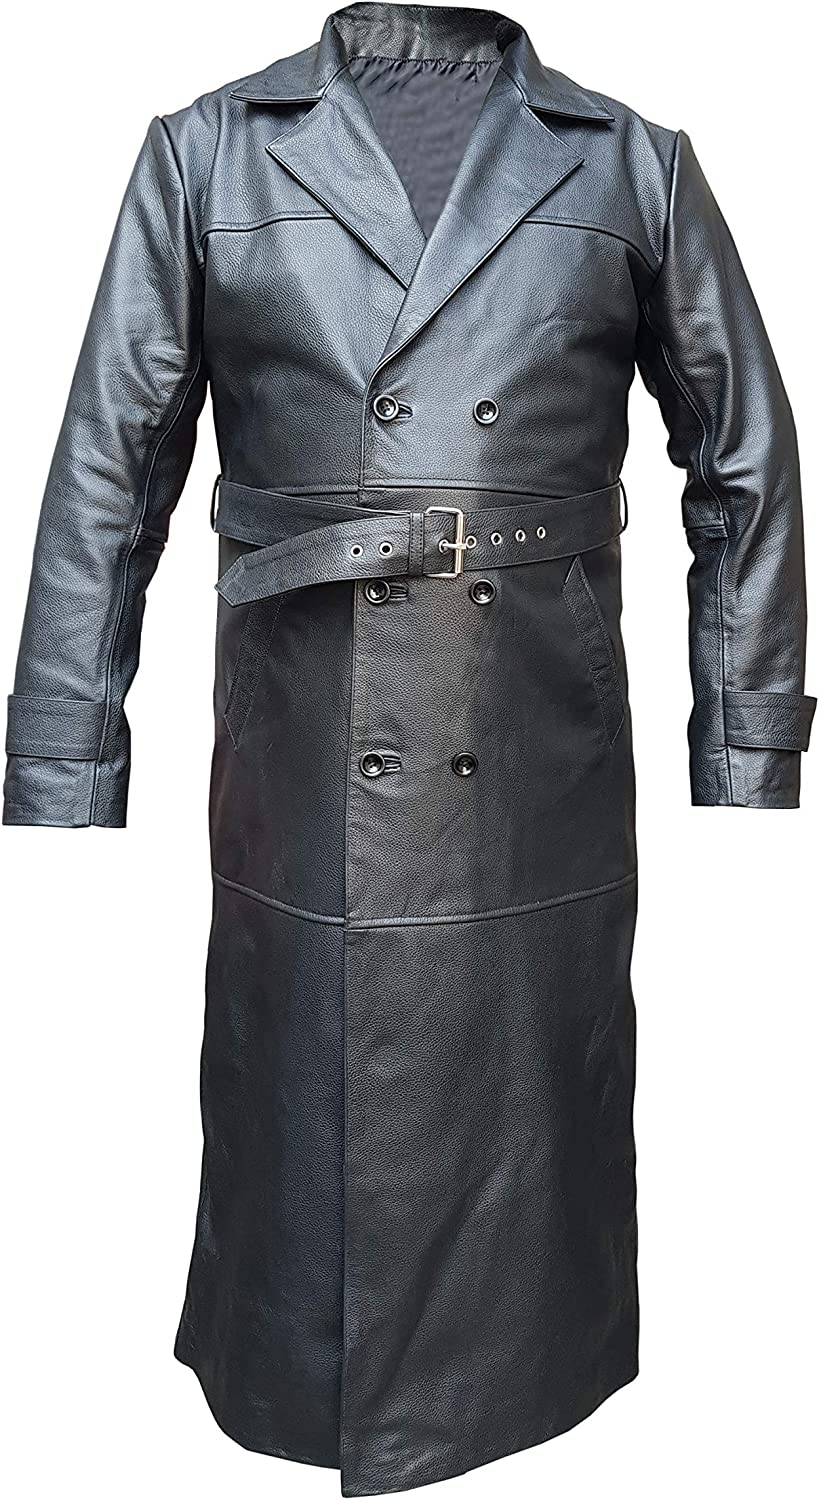 Trench Coat Real Black Leather Full Length Double Breast Jacket for Mens